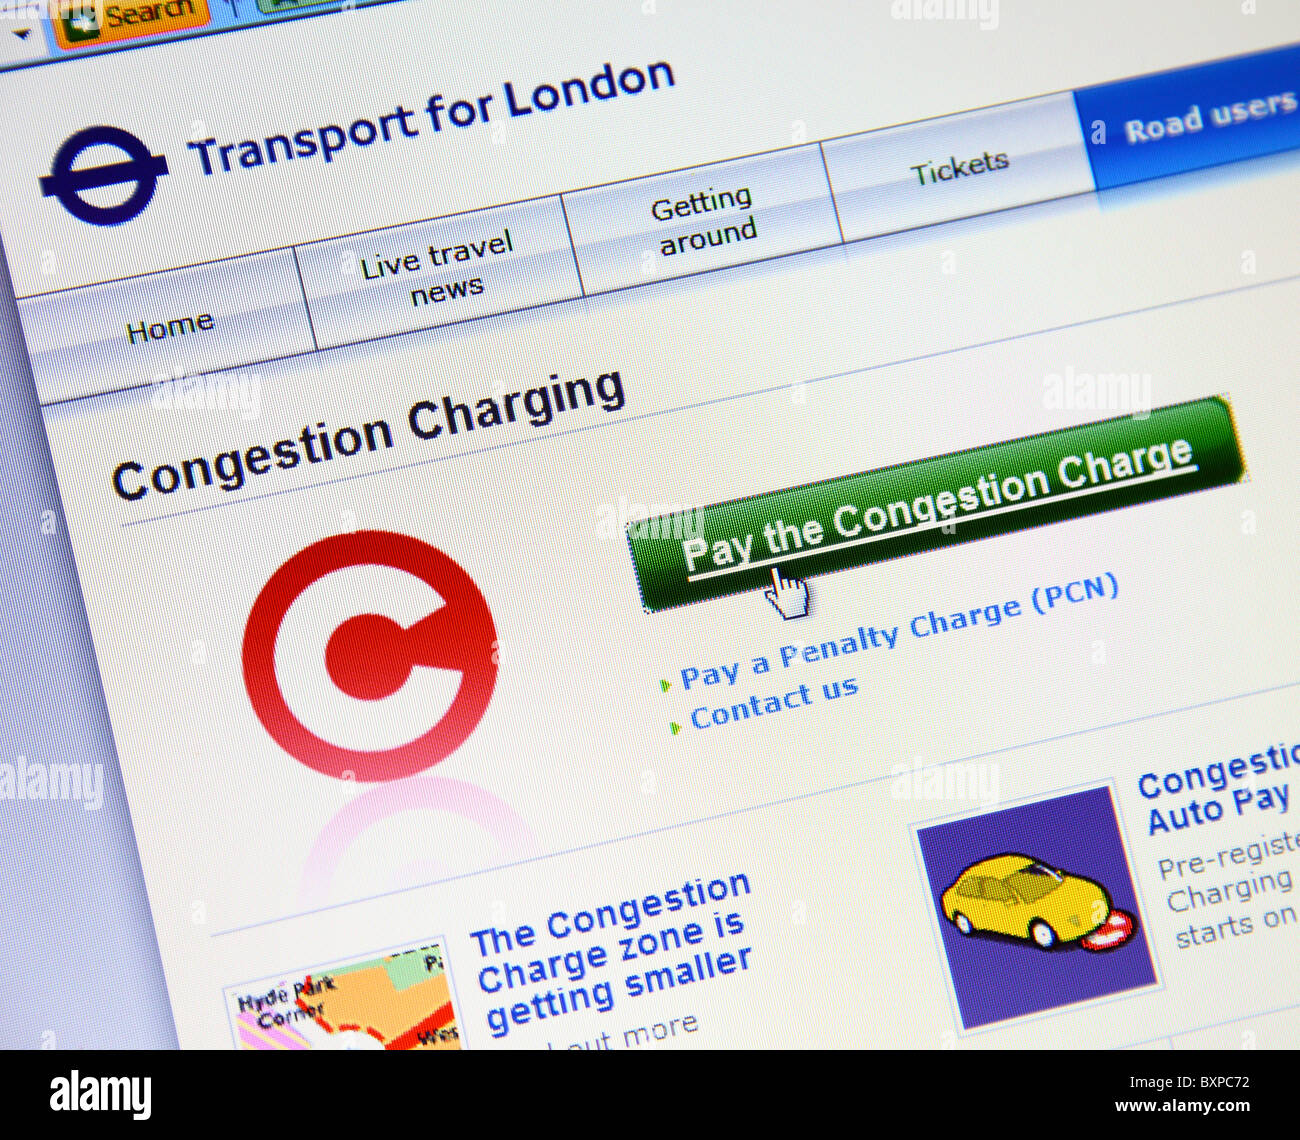 Transport for London (TFL) Congestion Charge online payment website. - Stock Image